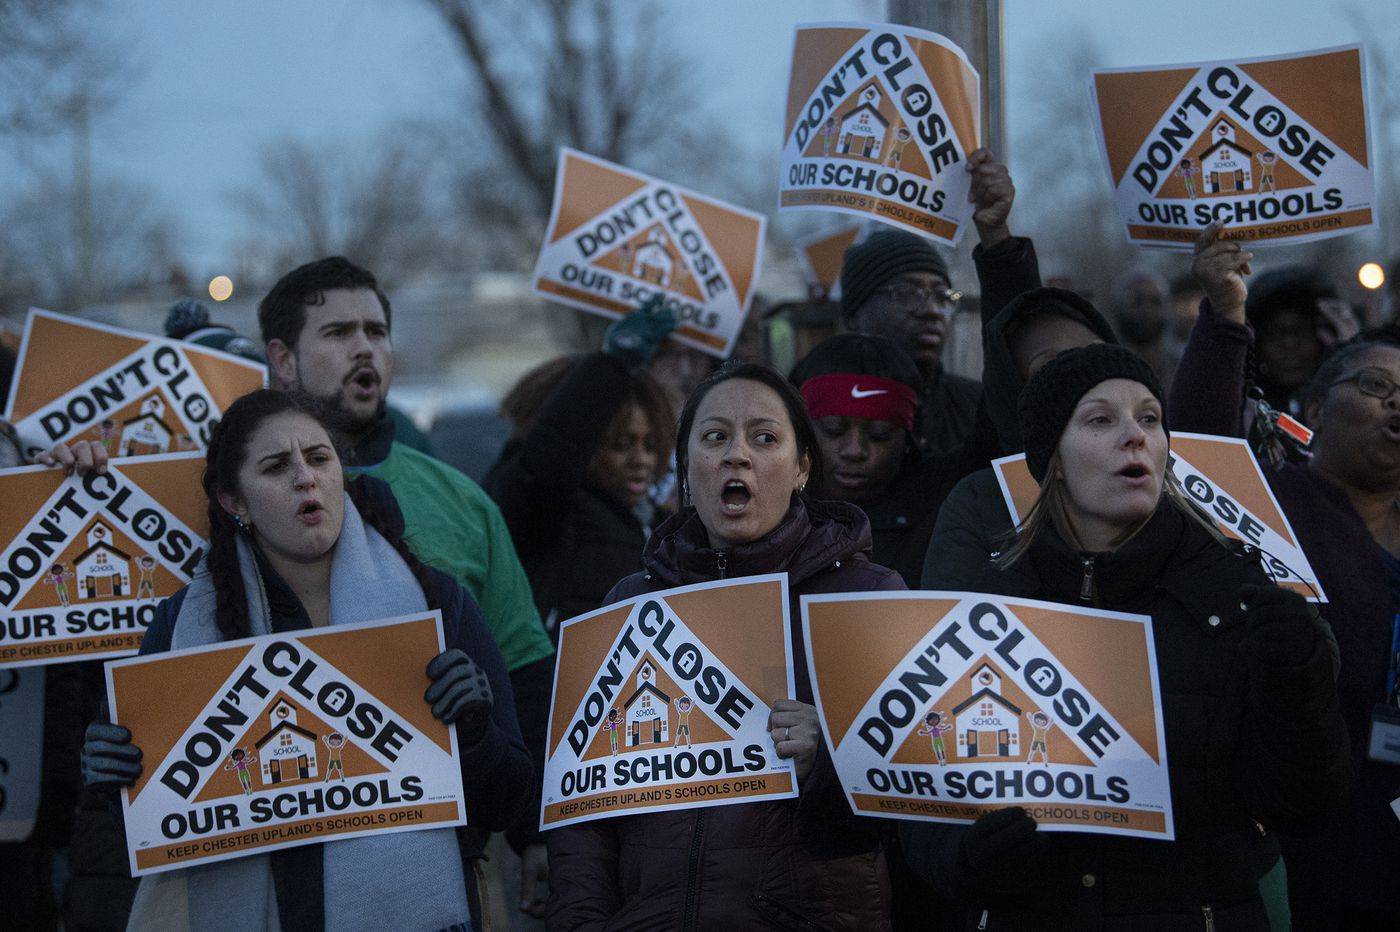 Judge denies petition to convert Chester Upland schools to charters, says charter expansion may be an option